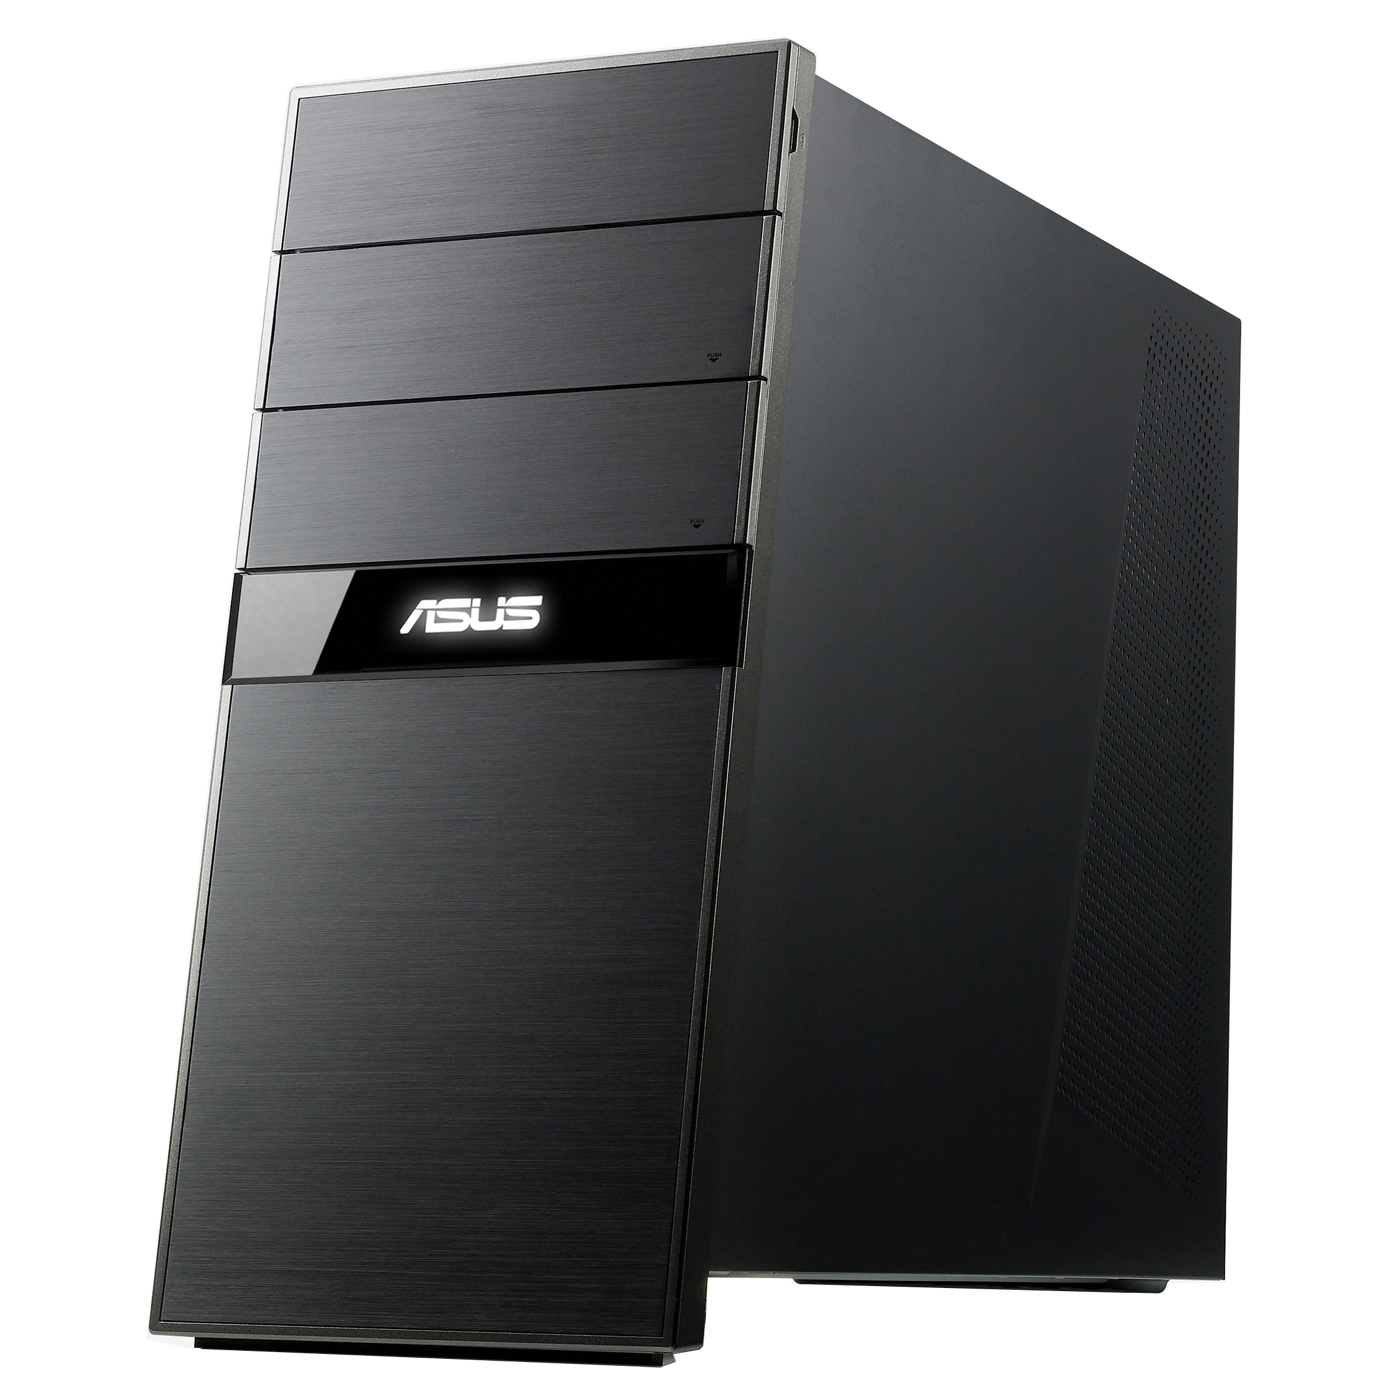 asus cg8265 frch01 pc de bureau asus sur. Black Bedroom Furniture Sets. Home Design Ideas